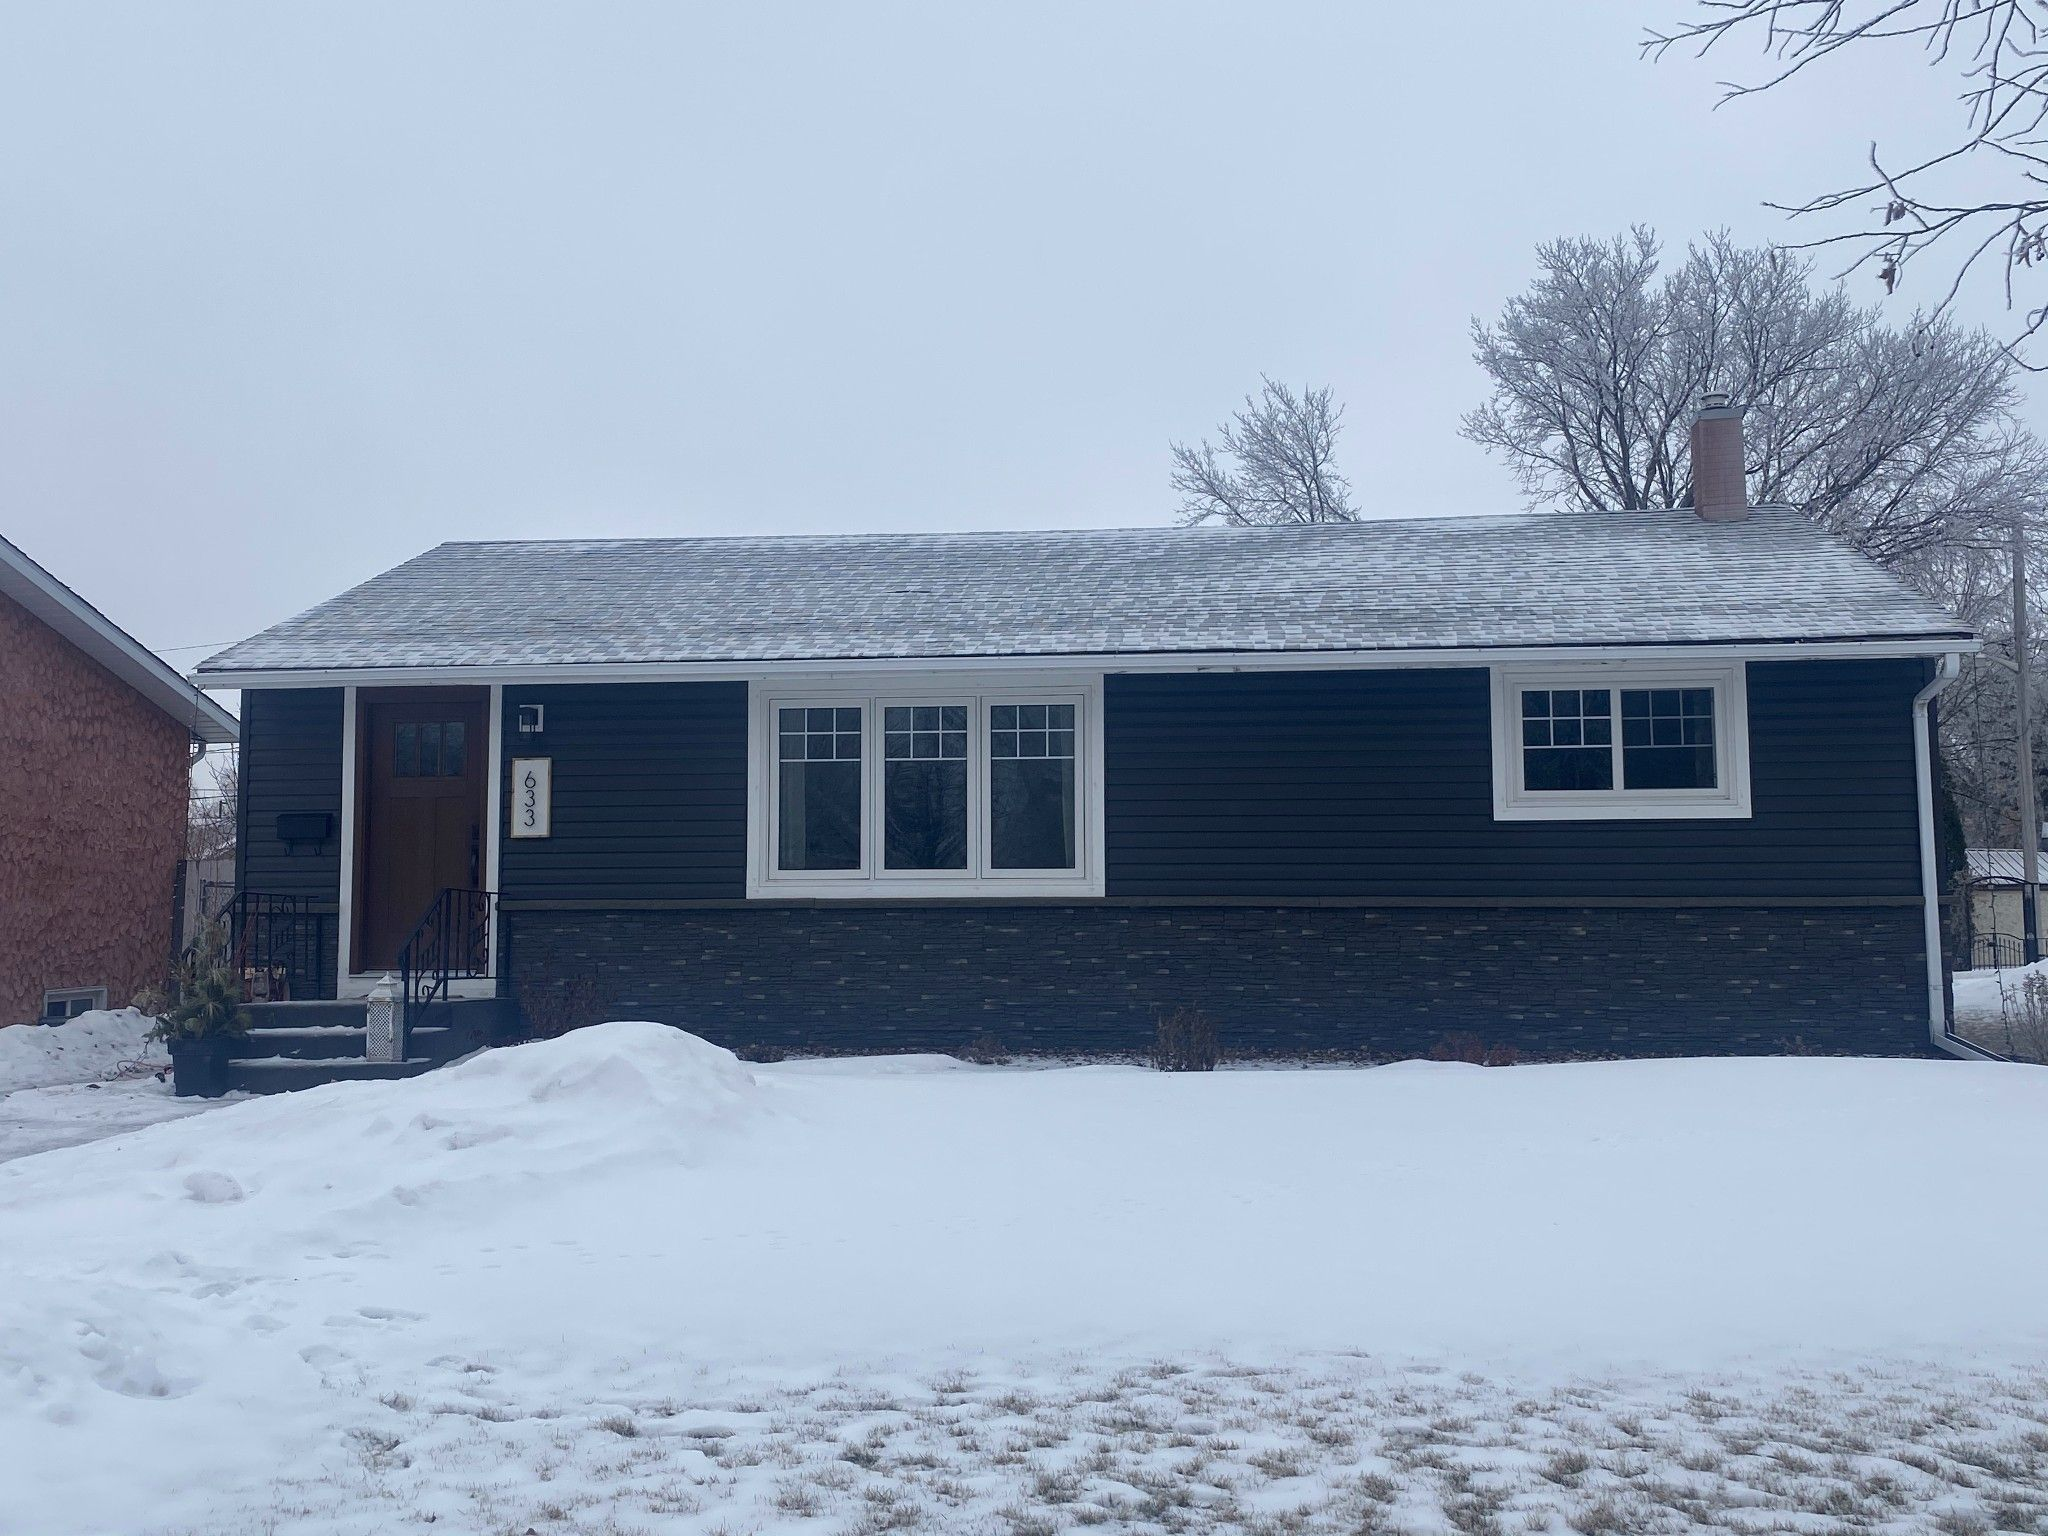 Main Photo: 633 King Avenue in Portage la Prairie: House for sale (SouthEast)  : MLS®# 202101806